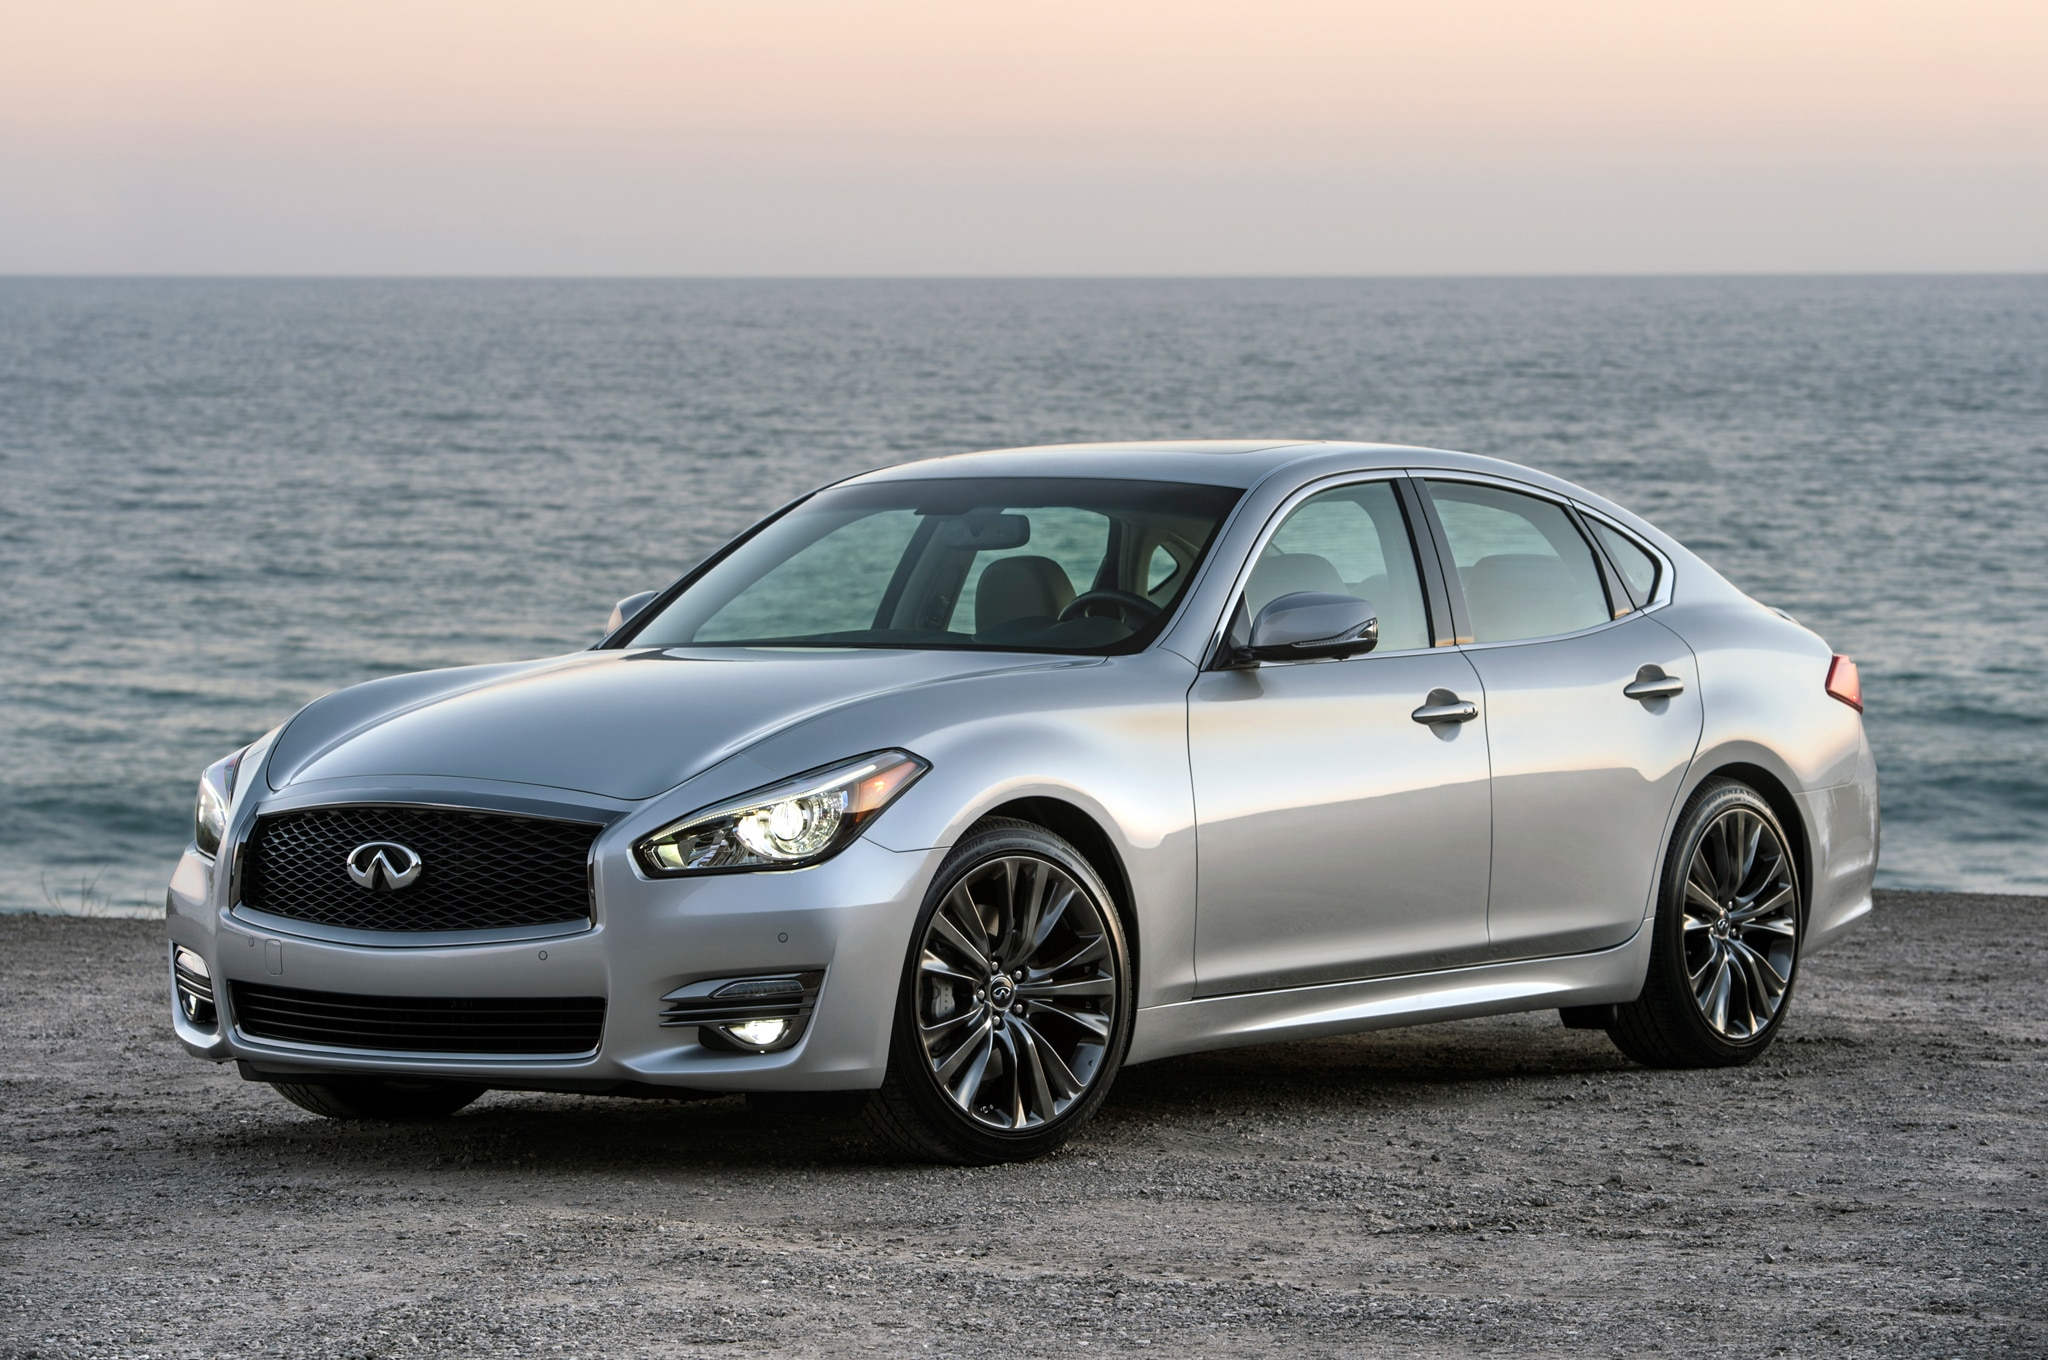 2016 Infiniti Q70 Premium Select Edition Front Three Quarter